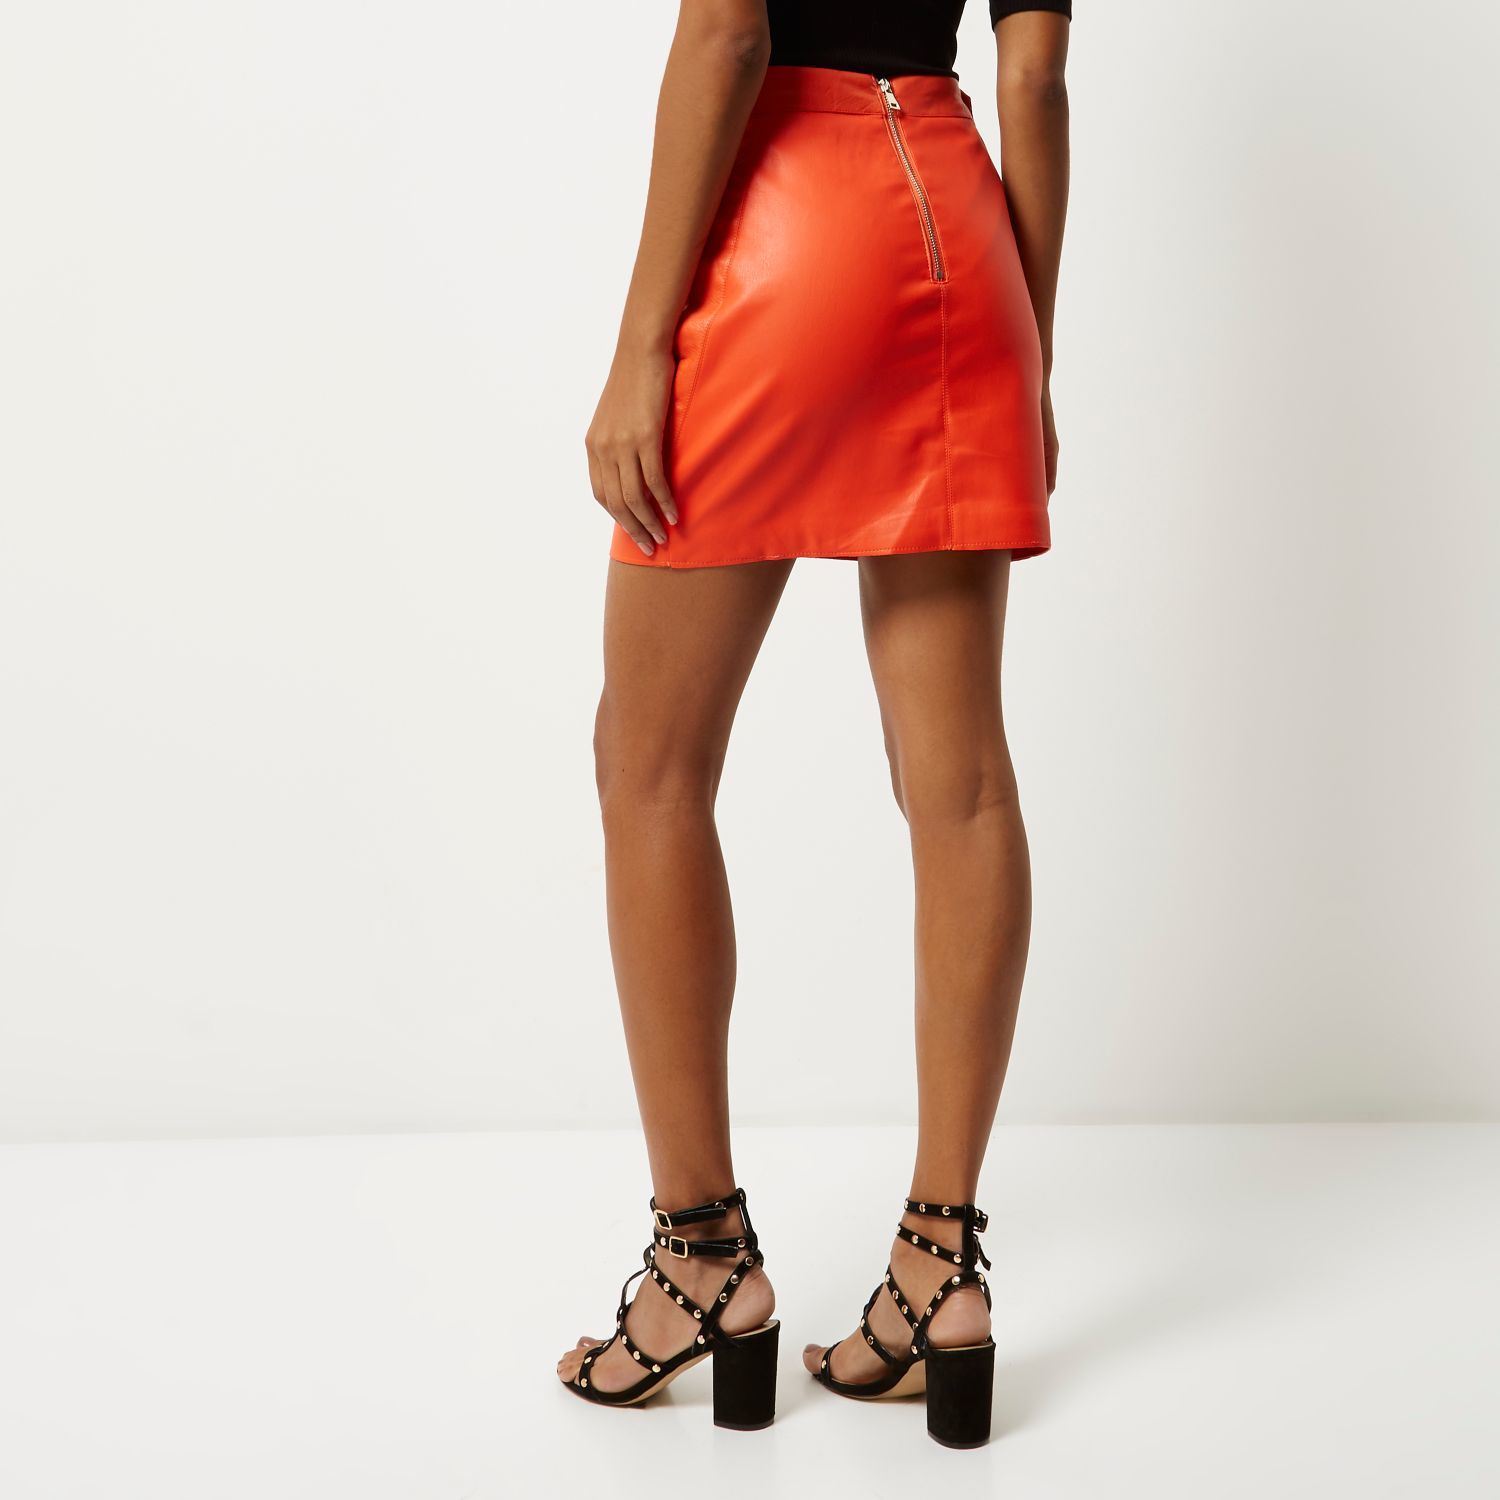 f28444ebb0 Red Leather Pencil Skirt River Island | Saddha